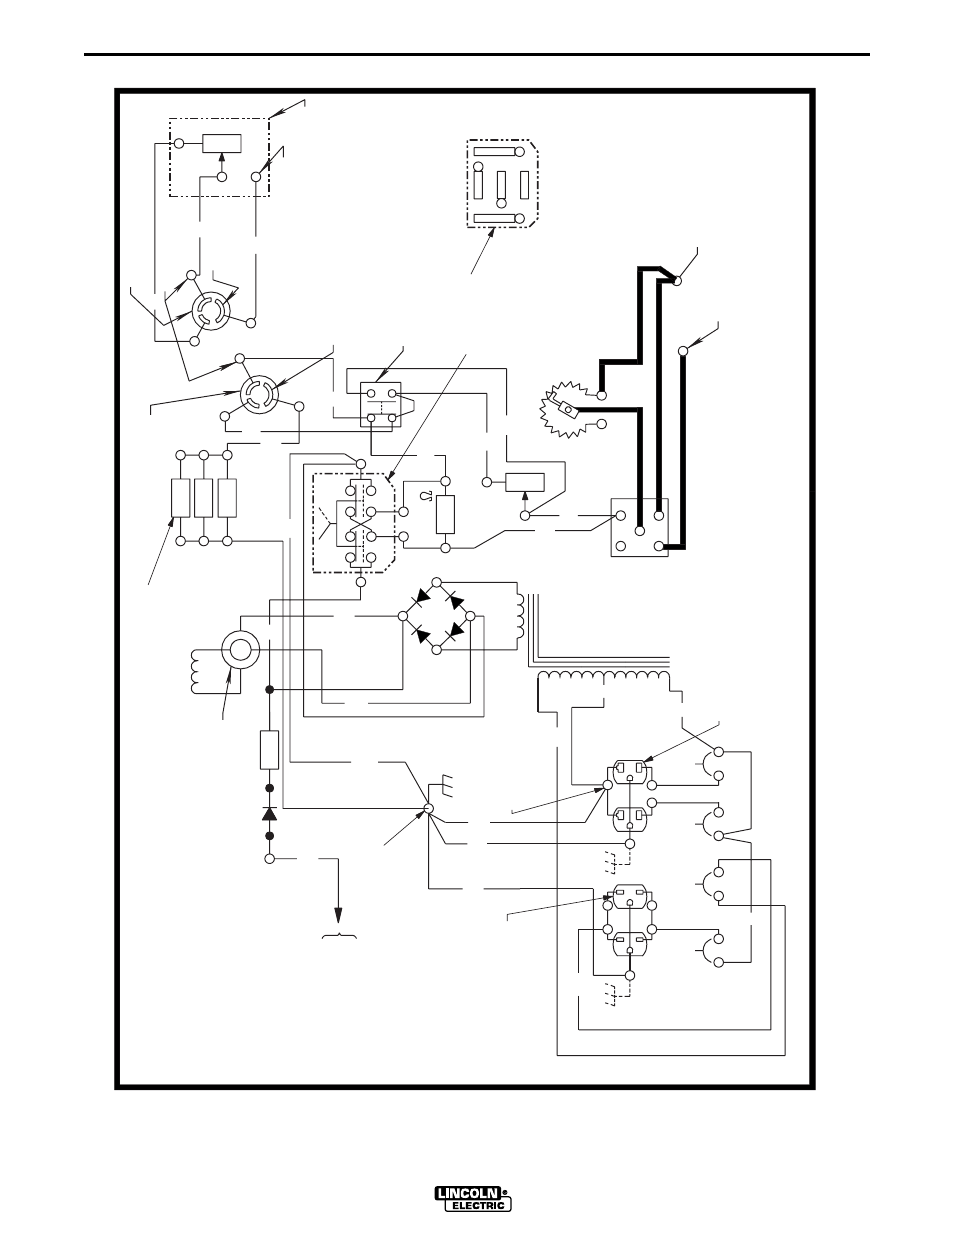 Lincoln 225 Arc Welder Wiring Diagram Free For You Sa 200 Welding Machinet Library Rh 8 Ayazagagrup Org S